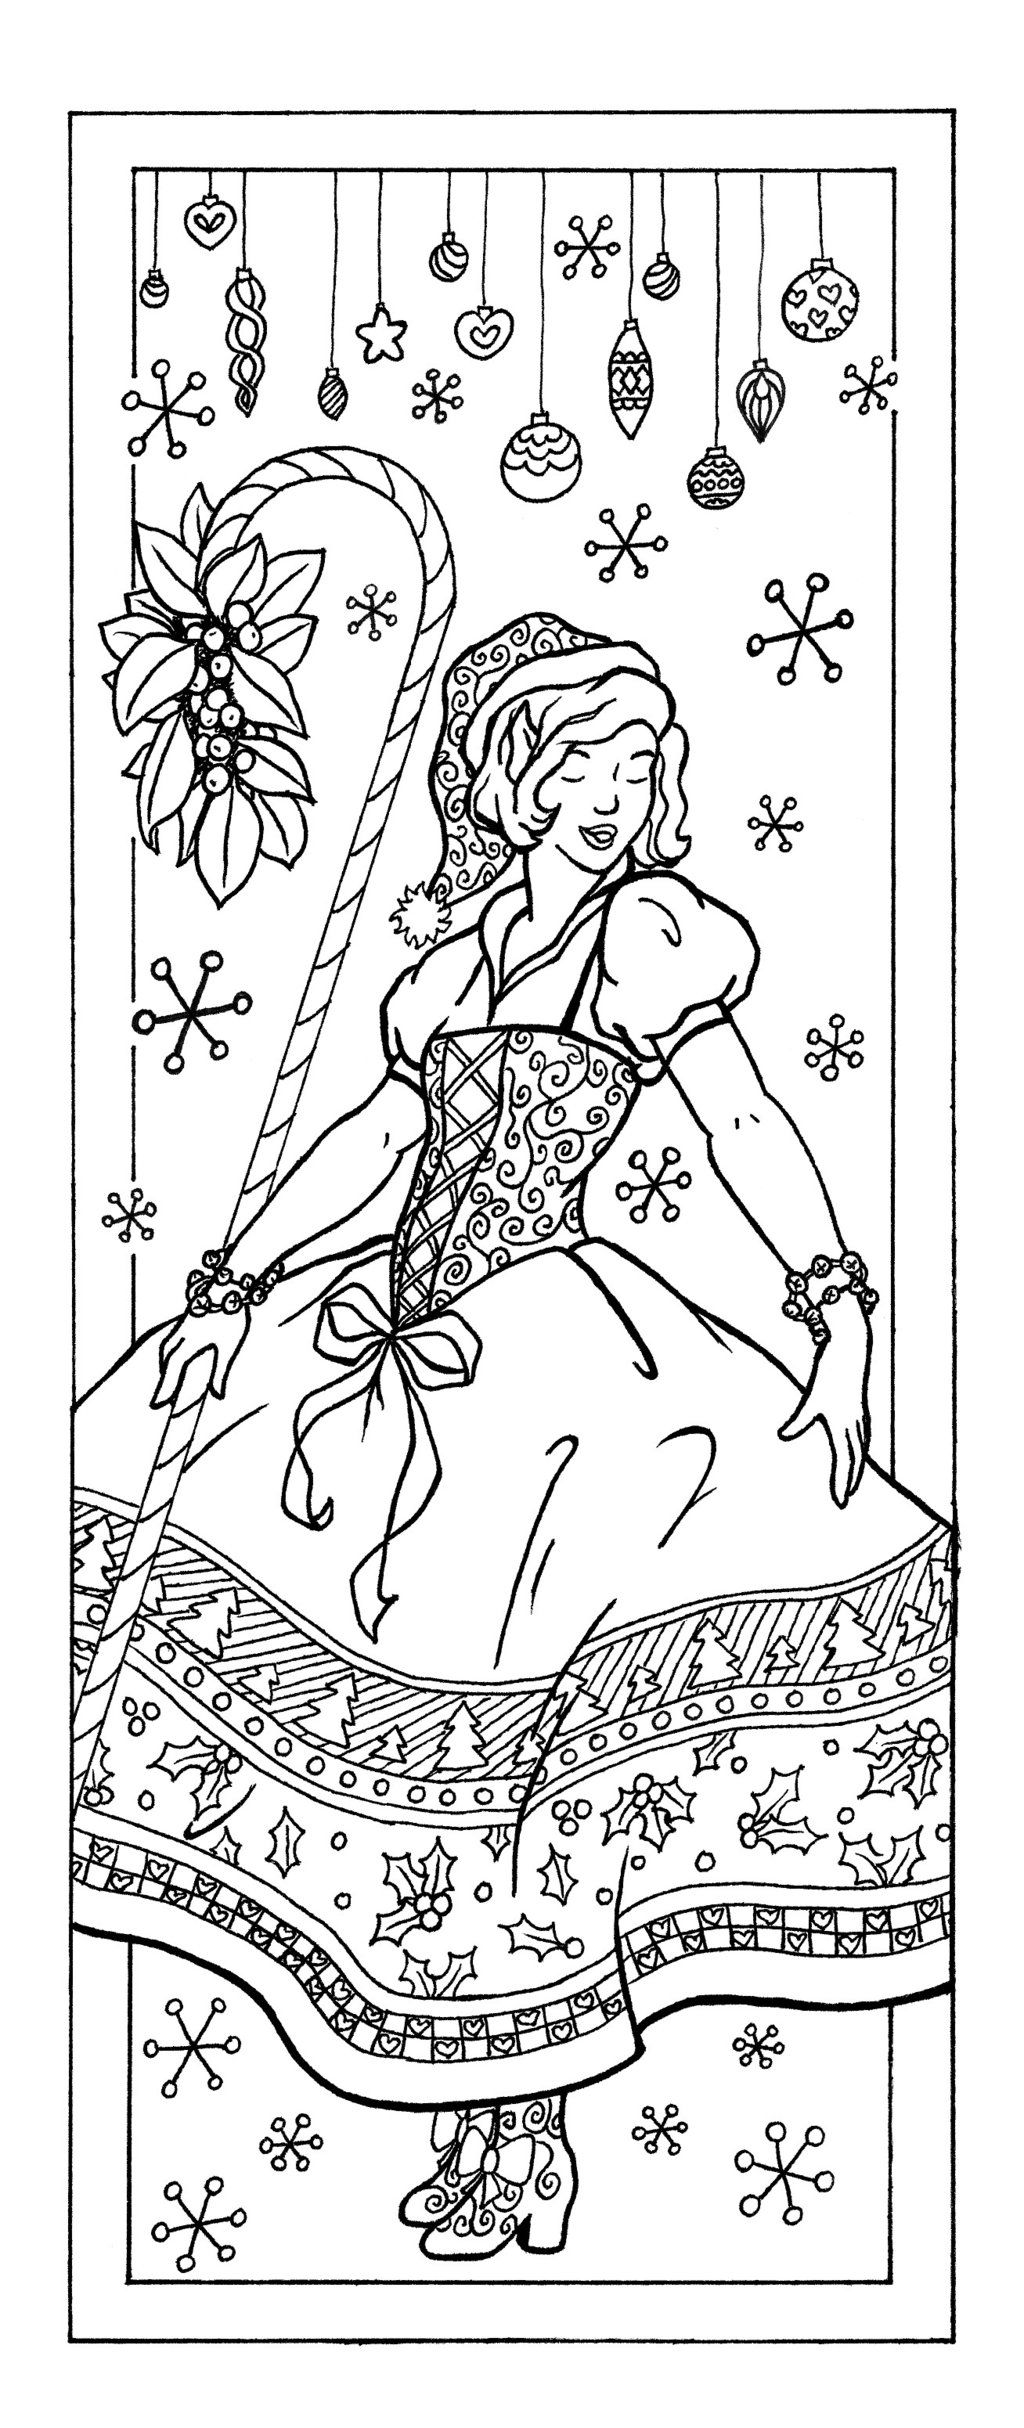 christmas elf coloring page bookmark fits one half sheet of paper print 2